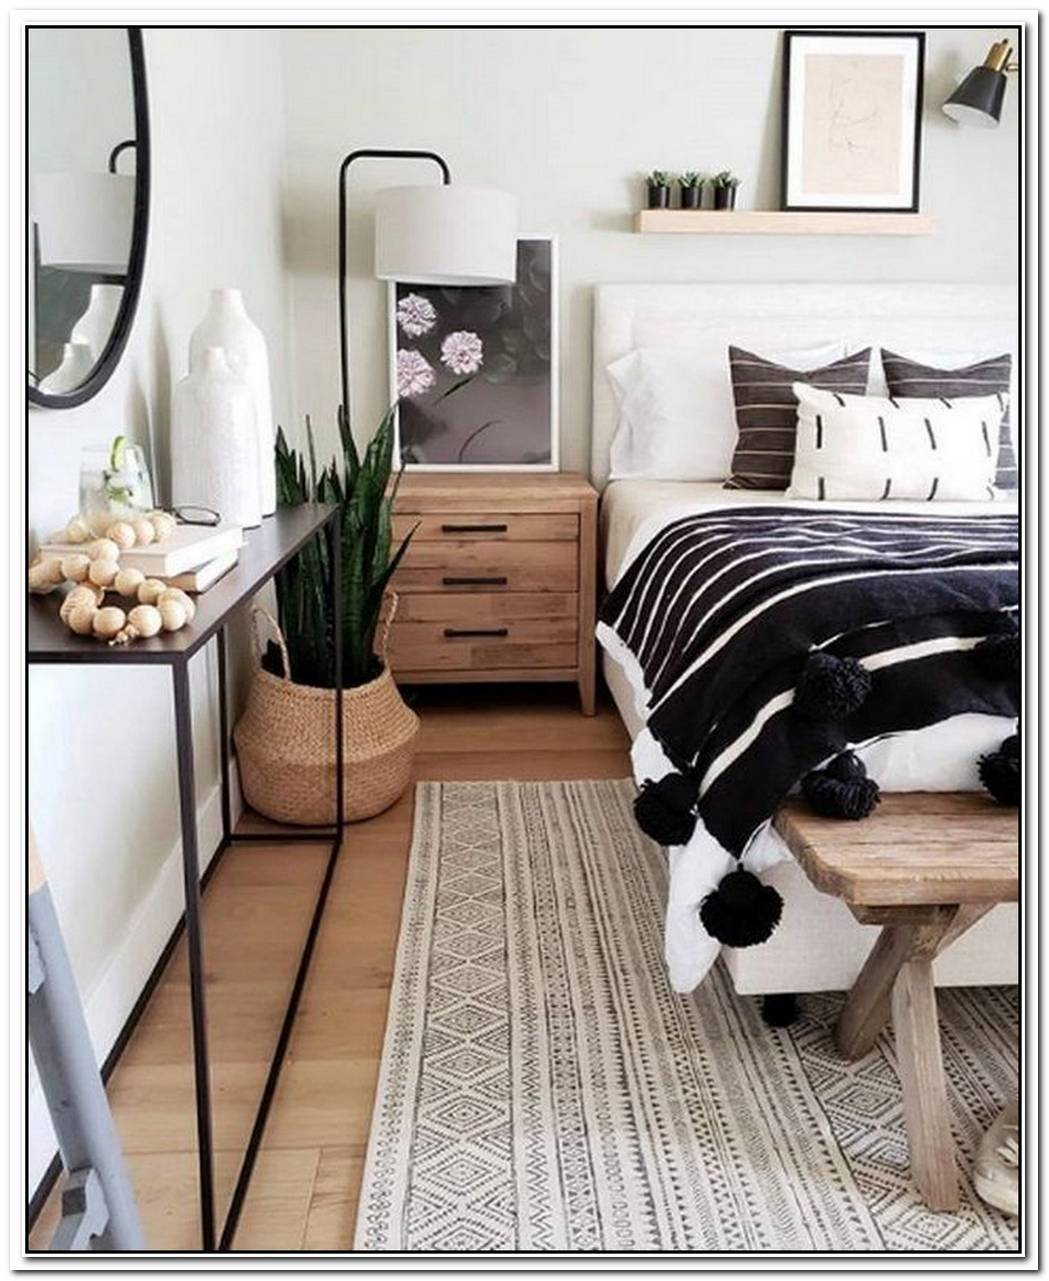 Say Hello To The Minimalist Room That Nailed The Inclusion Of Patterns